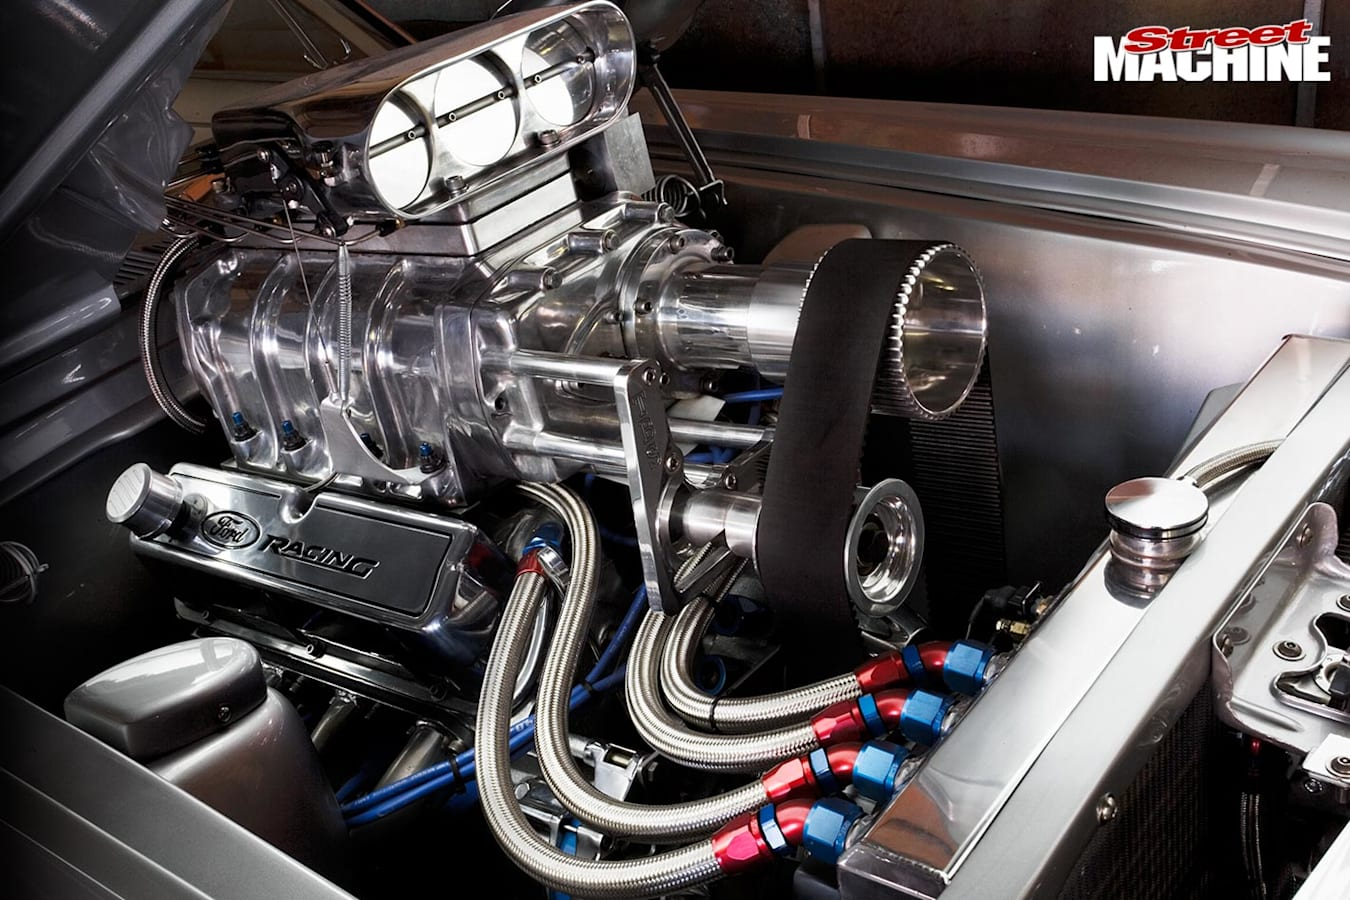 Ford Mustang engine bay